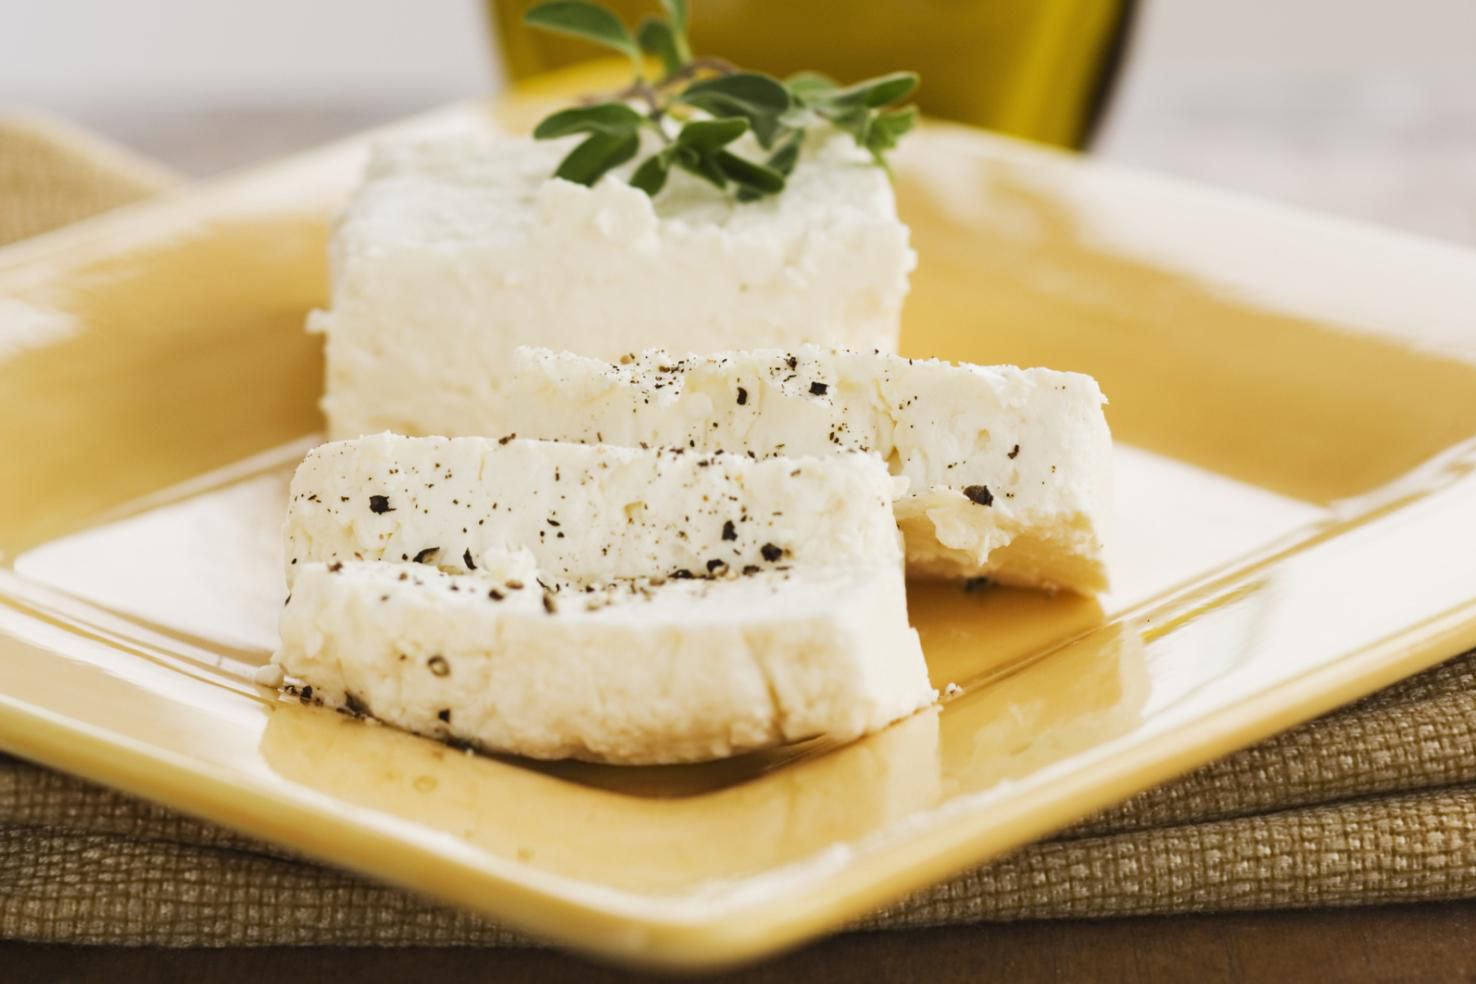 Feta Cheese The Types Of Feta And What It Is